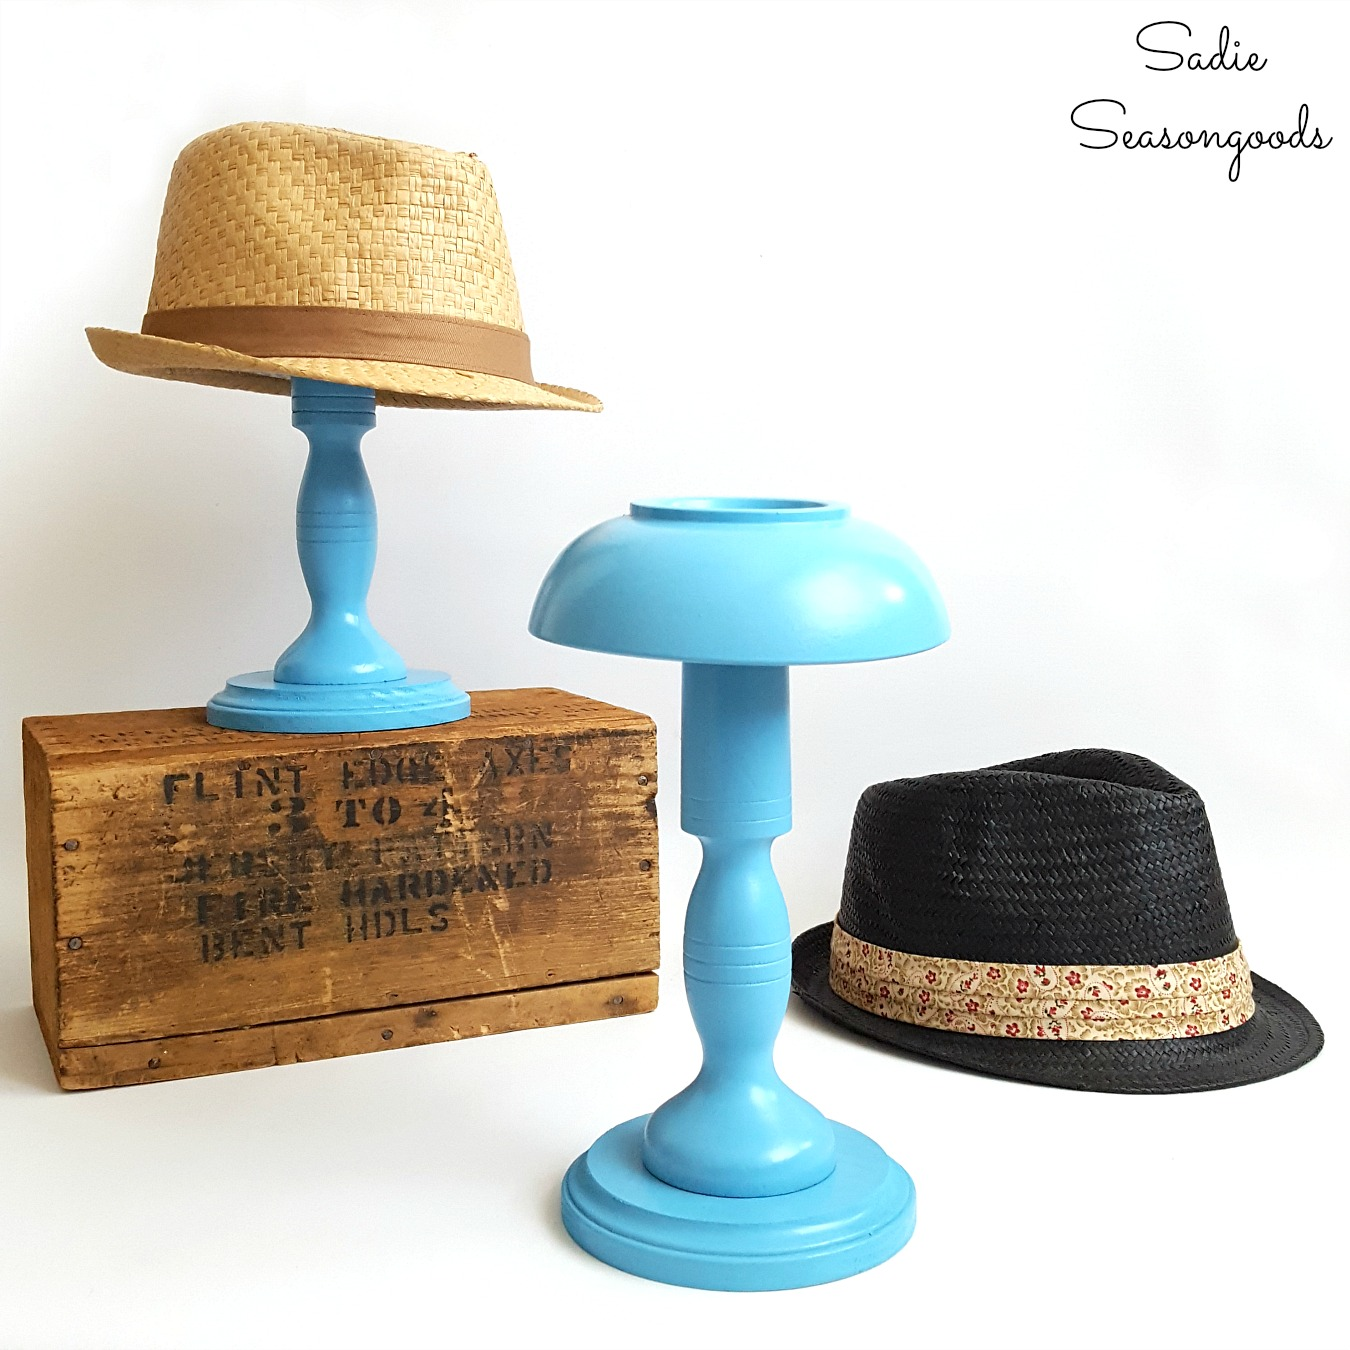 Hat Holder / Hat Storage from Upcycled Wooden Bowls and Wooden Candlesticks